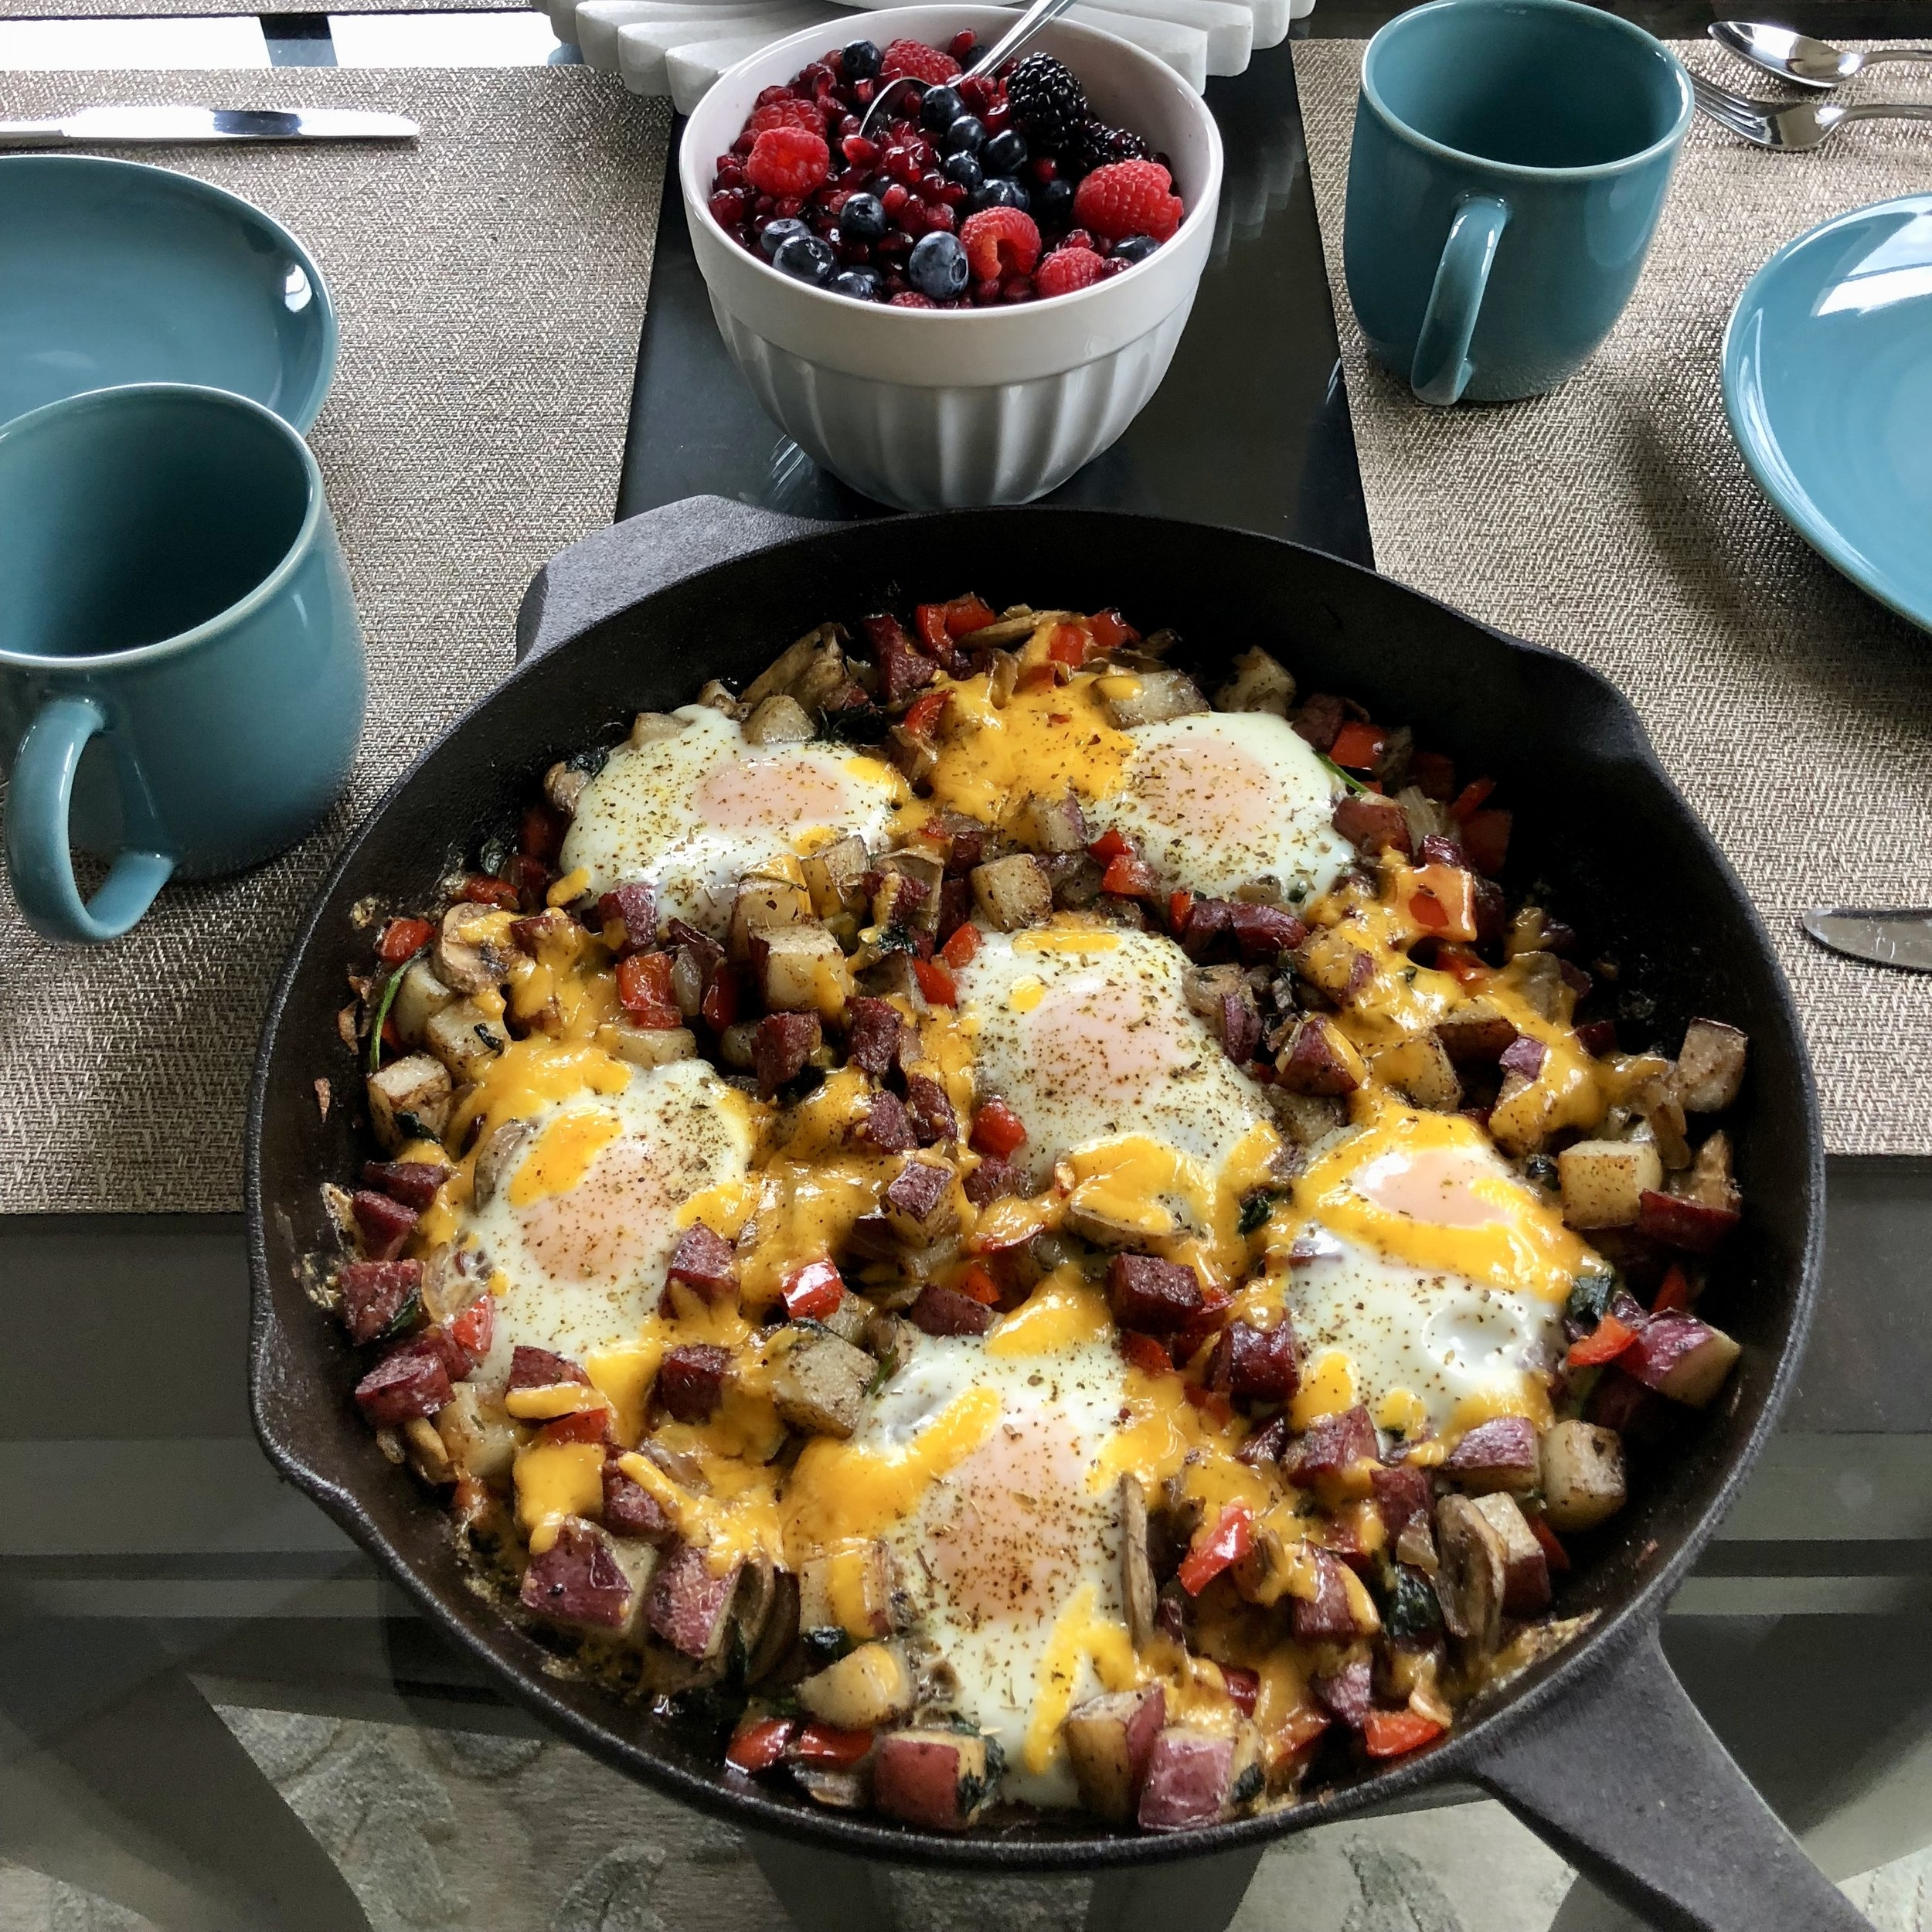 How good does this look? I first made this breakfast skillet for some of my dear friends visiting us from New York and it was a hit!